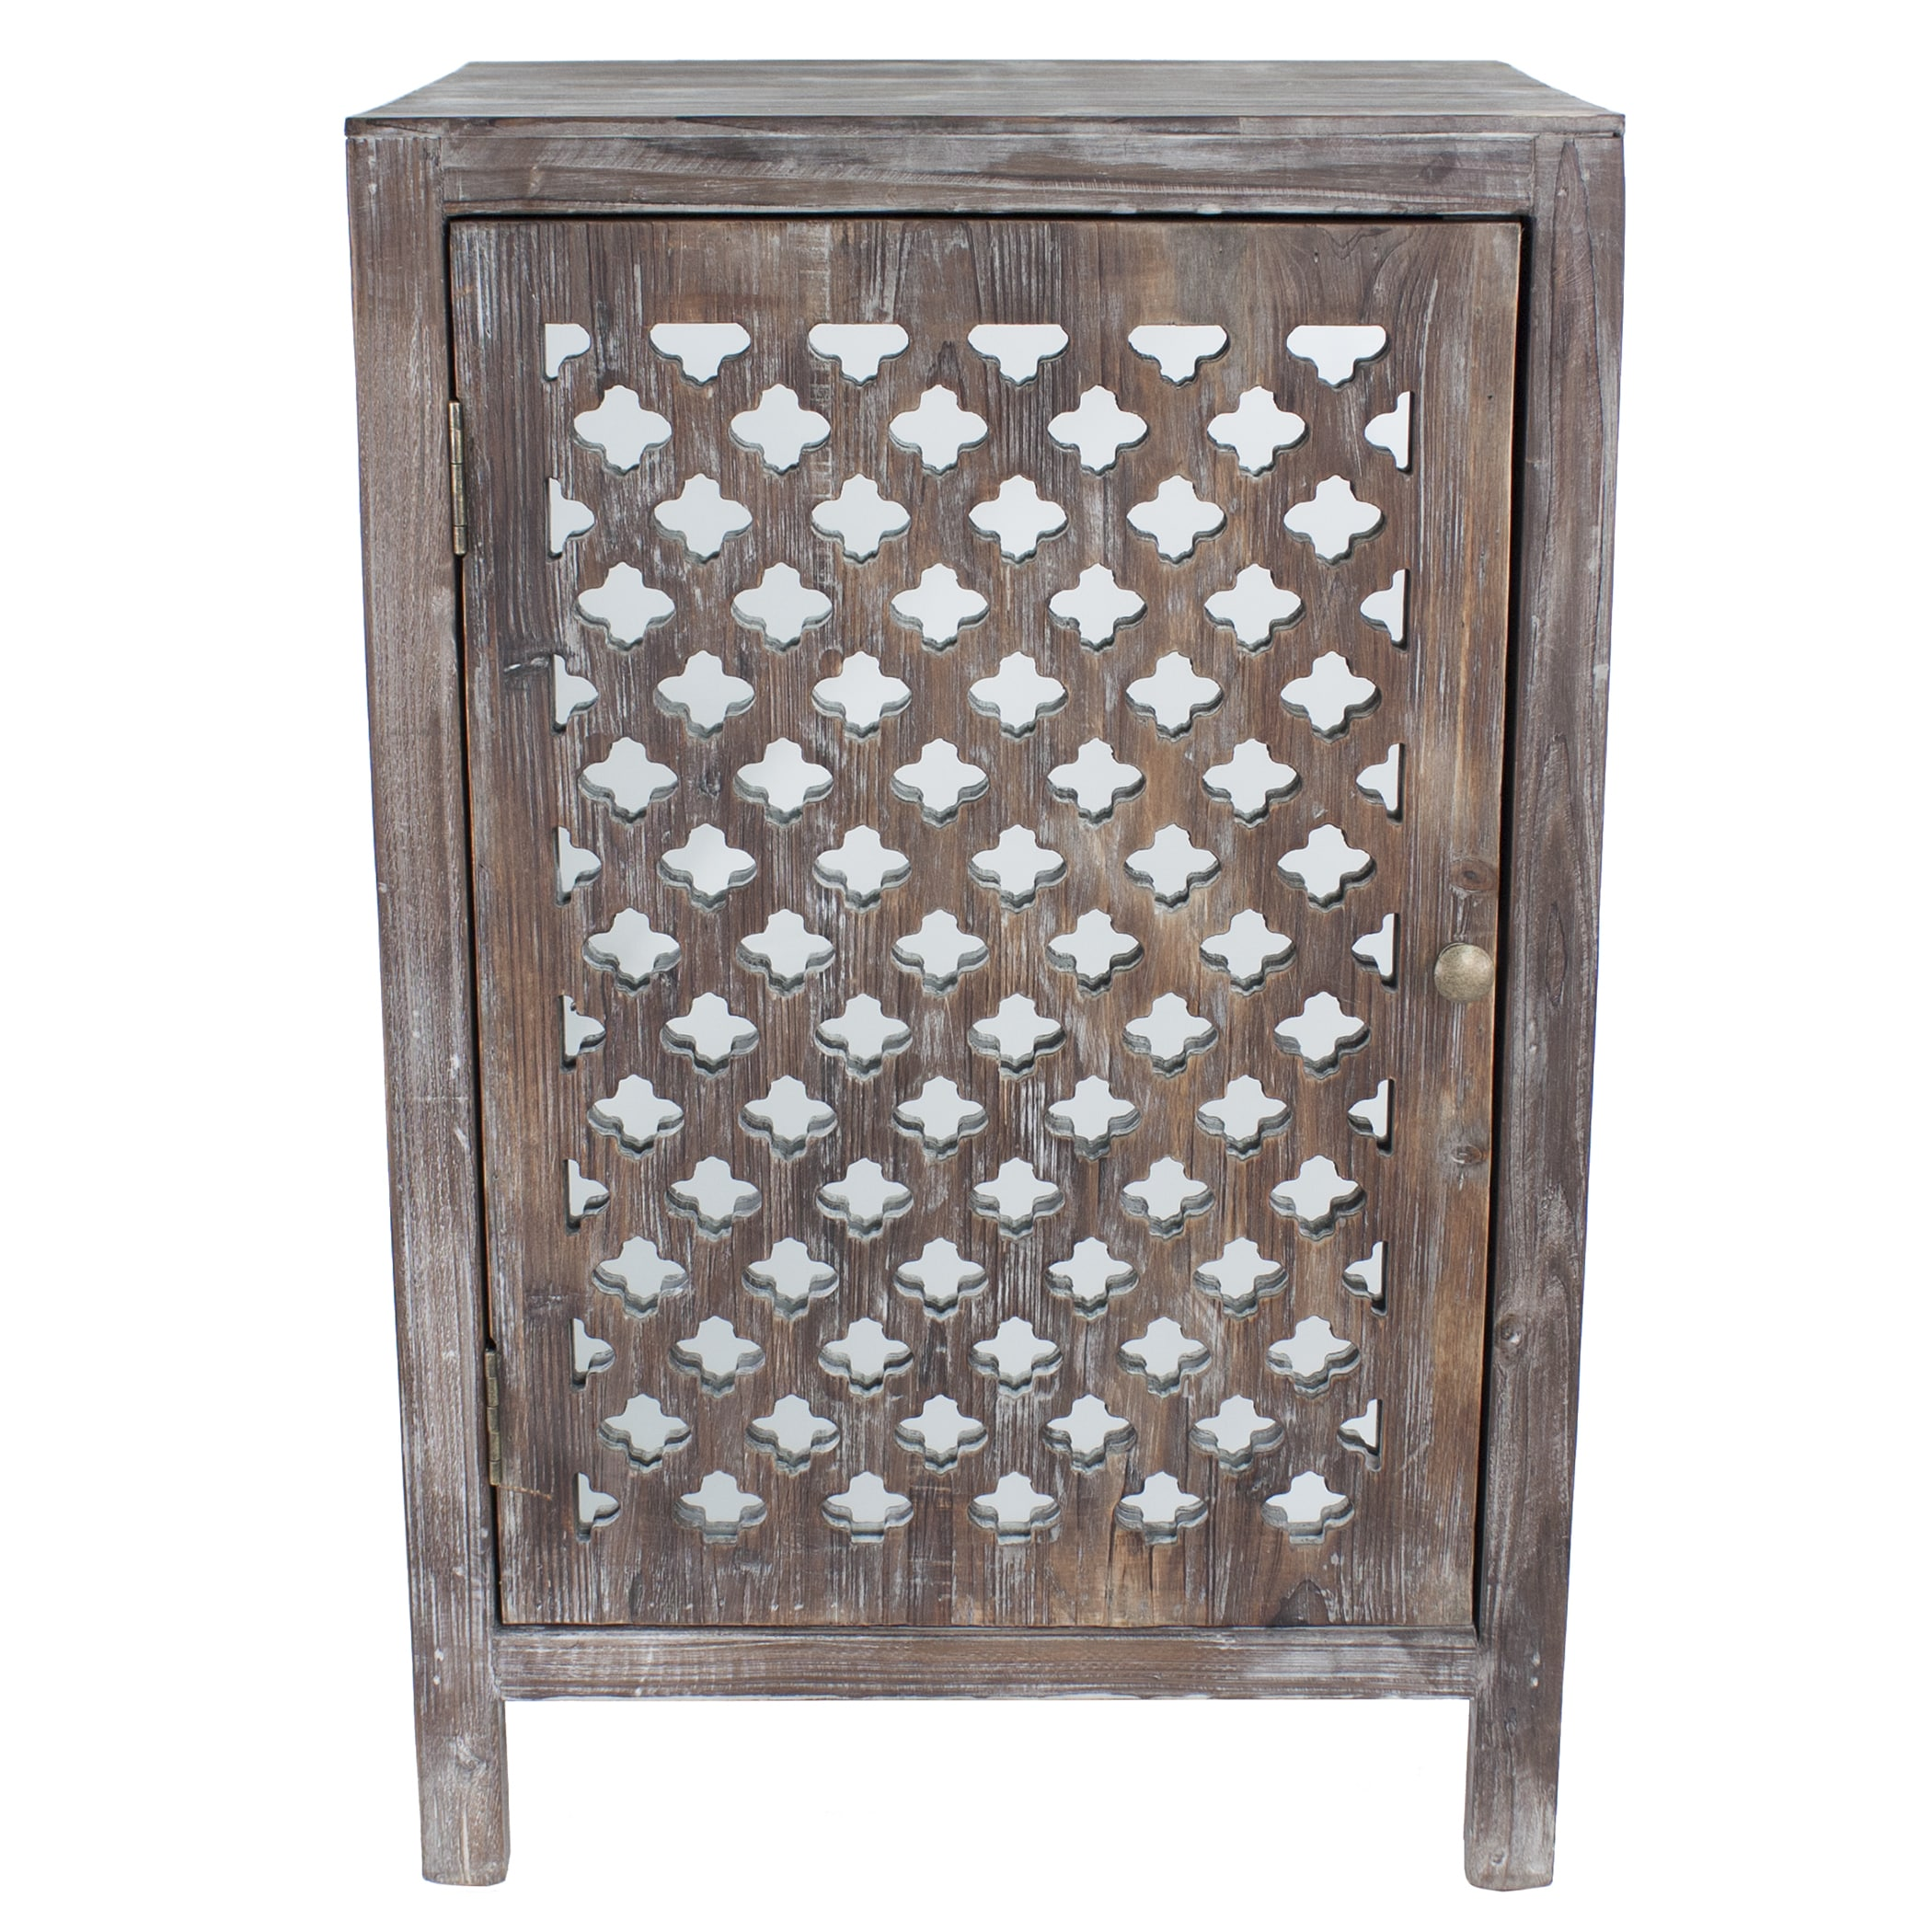 maison rouge anatole distressed grey quatrefoil end table with wood accent mirror free shipping orders over winsome timmy old oak side ikea childrens storage solutions inch